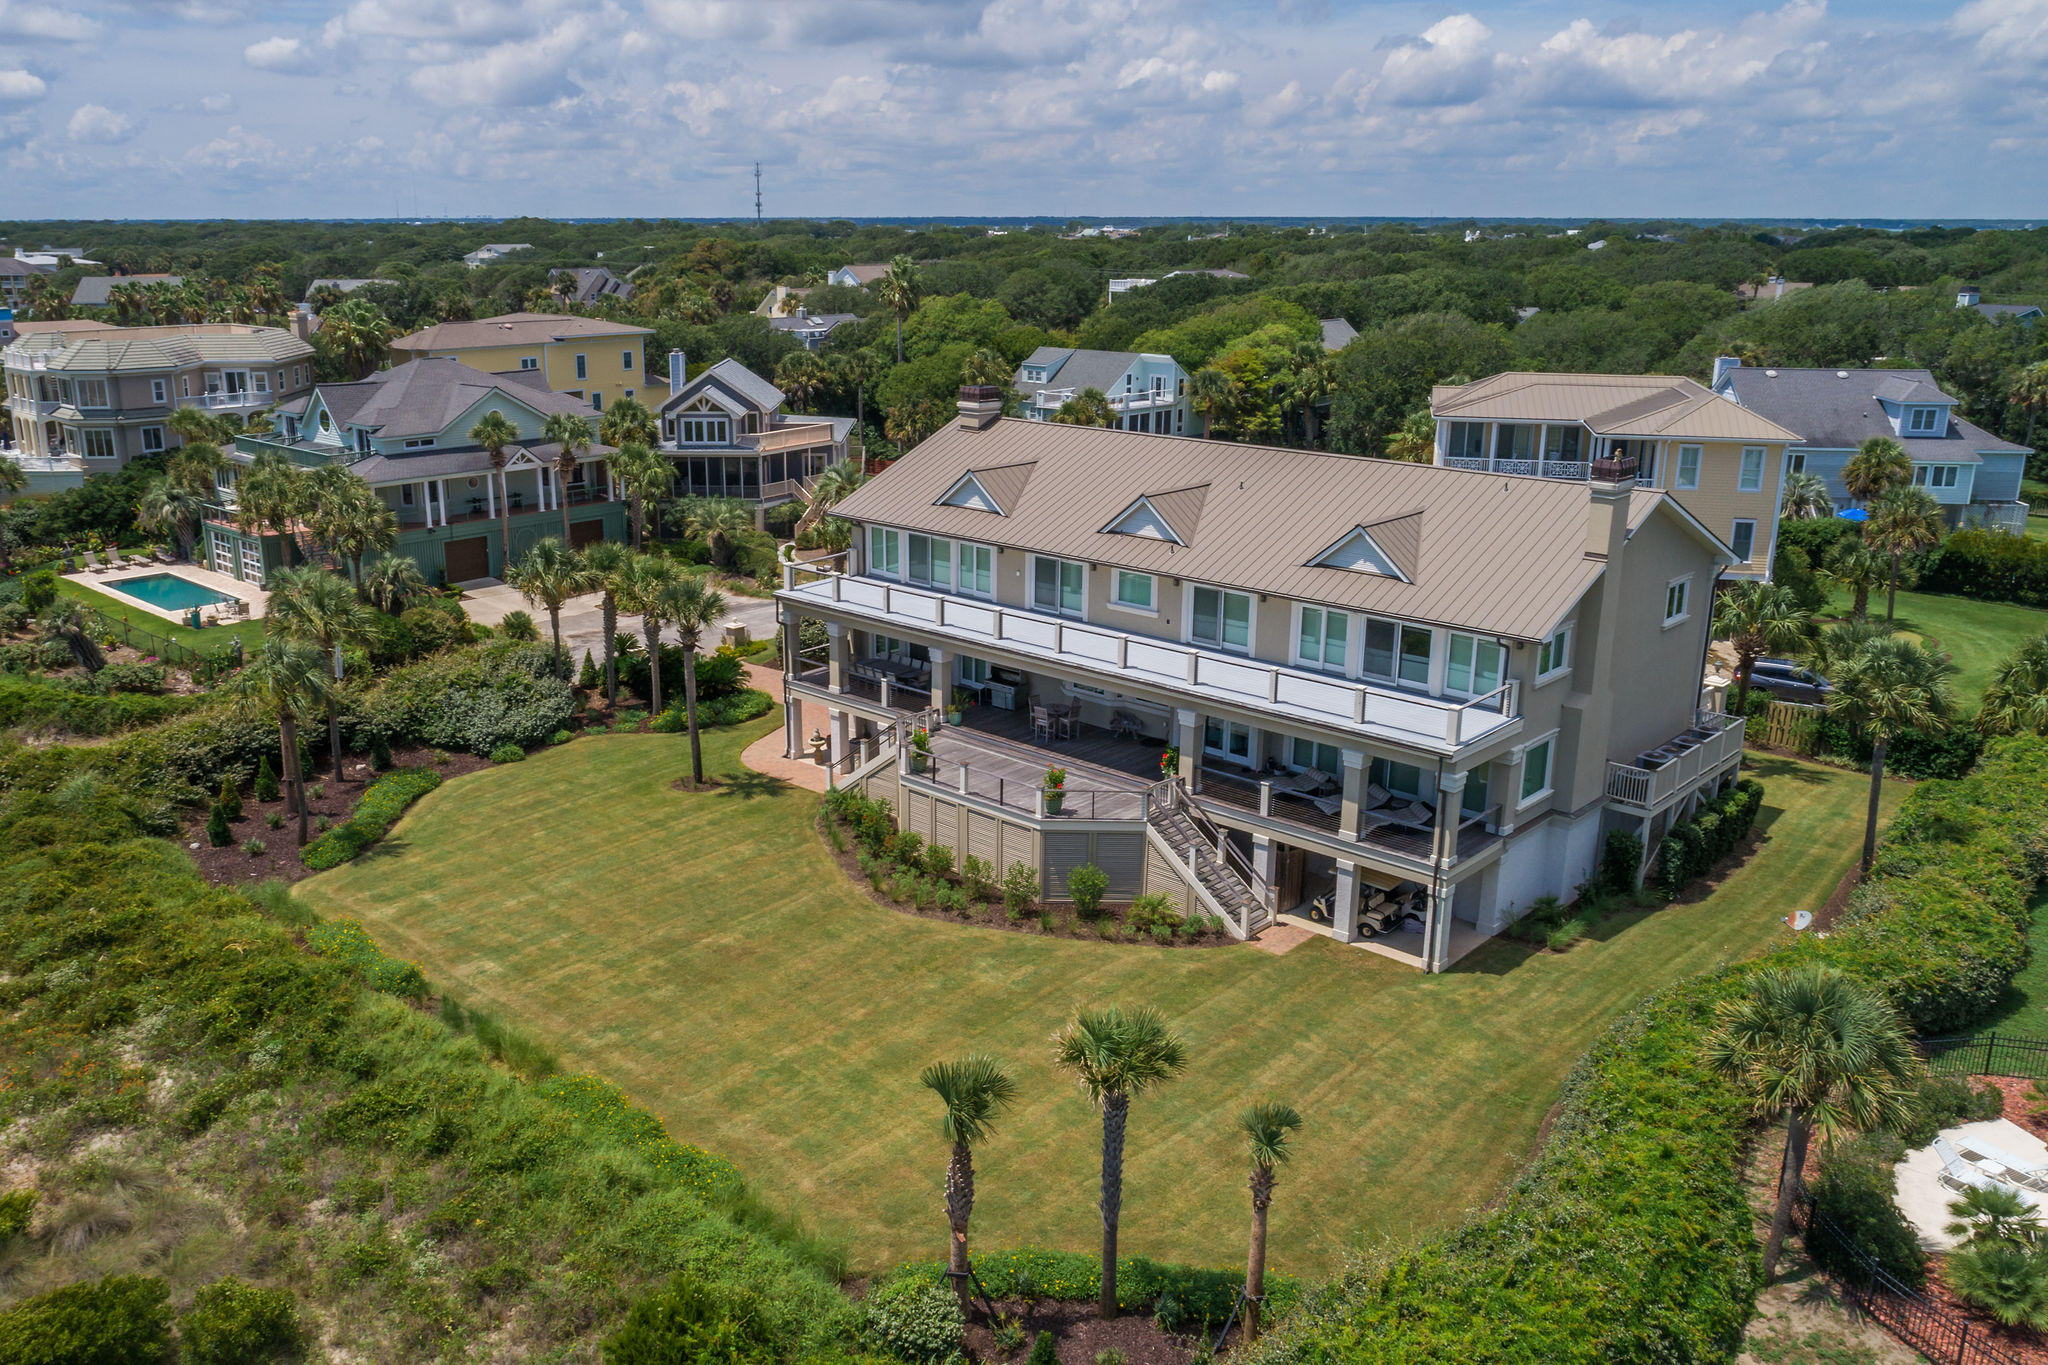 Isle of Palms Homes For Sale - 2 50th, Isle of Palms, SC - 22